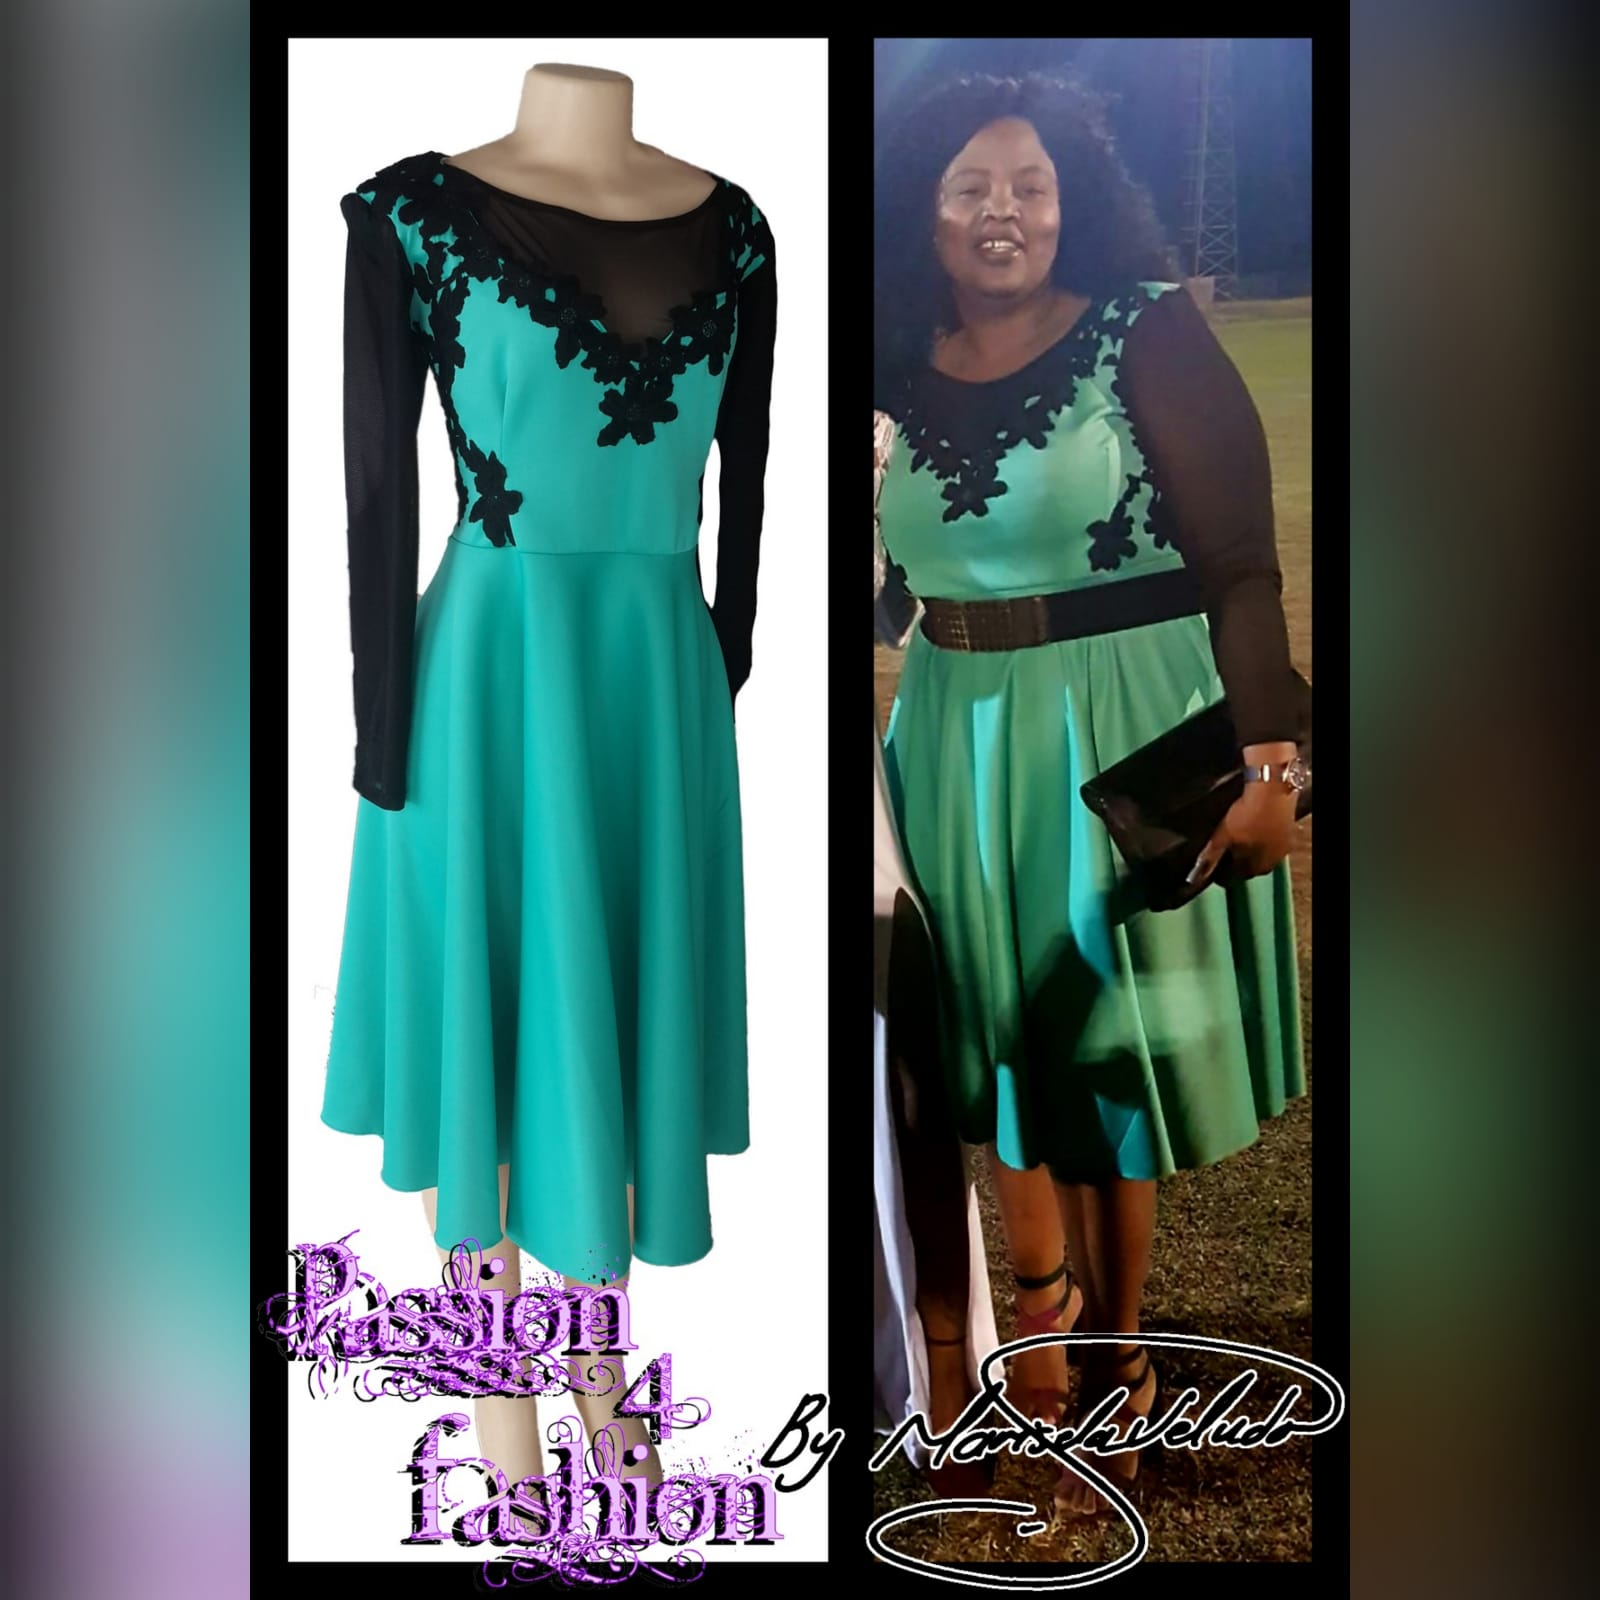 Mint green and black knee length evening dress 3 mint green and black knee length evening dress, with black sheer neckline and sleeves.